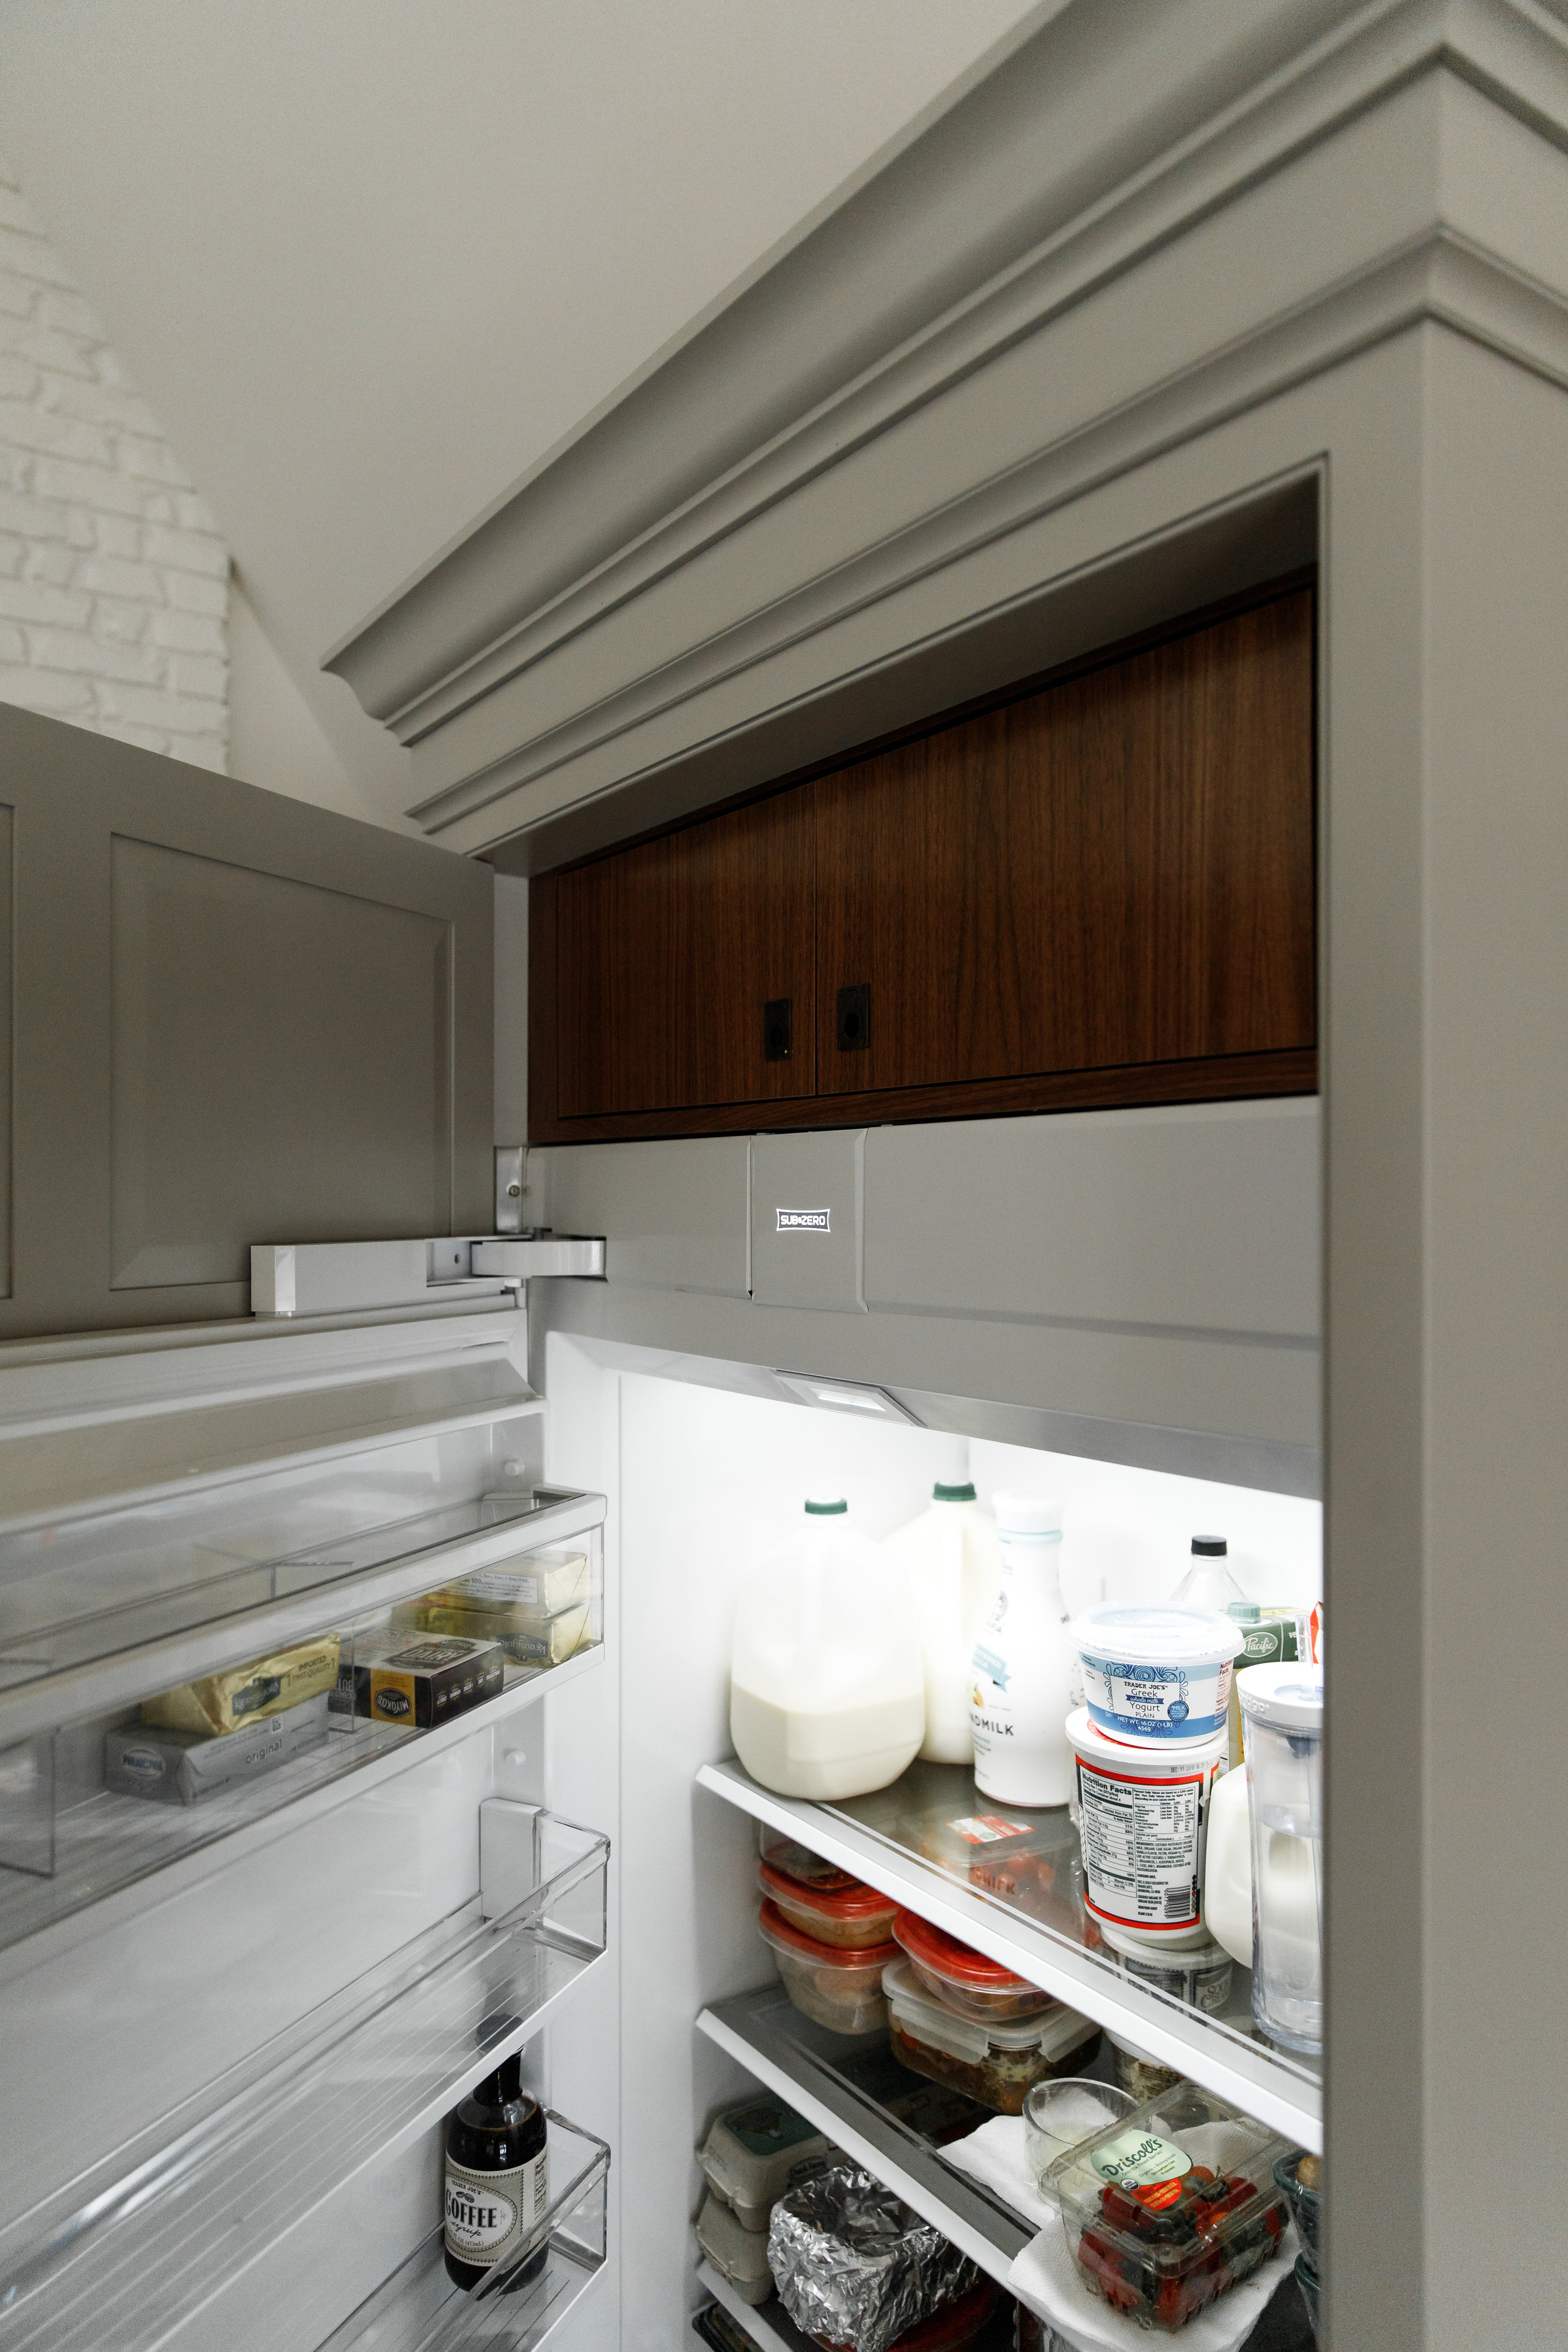 Refrigerator and cabinet organization